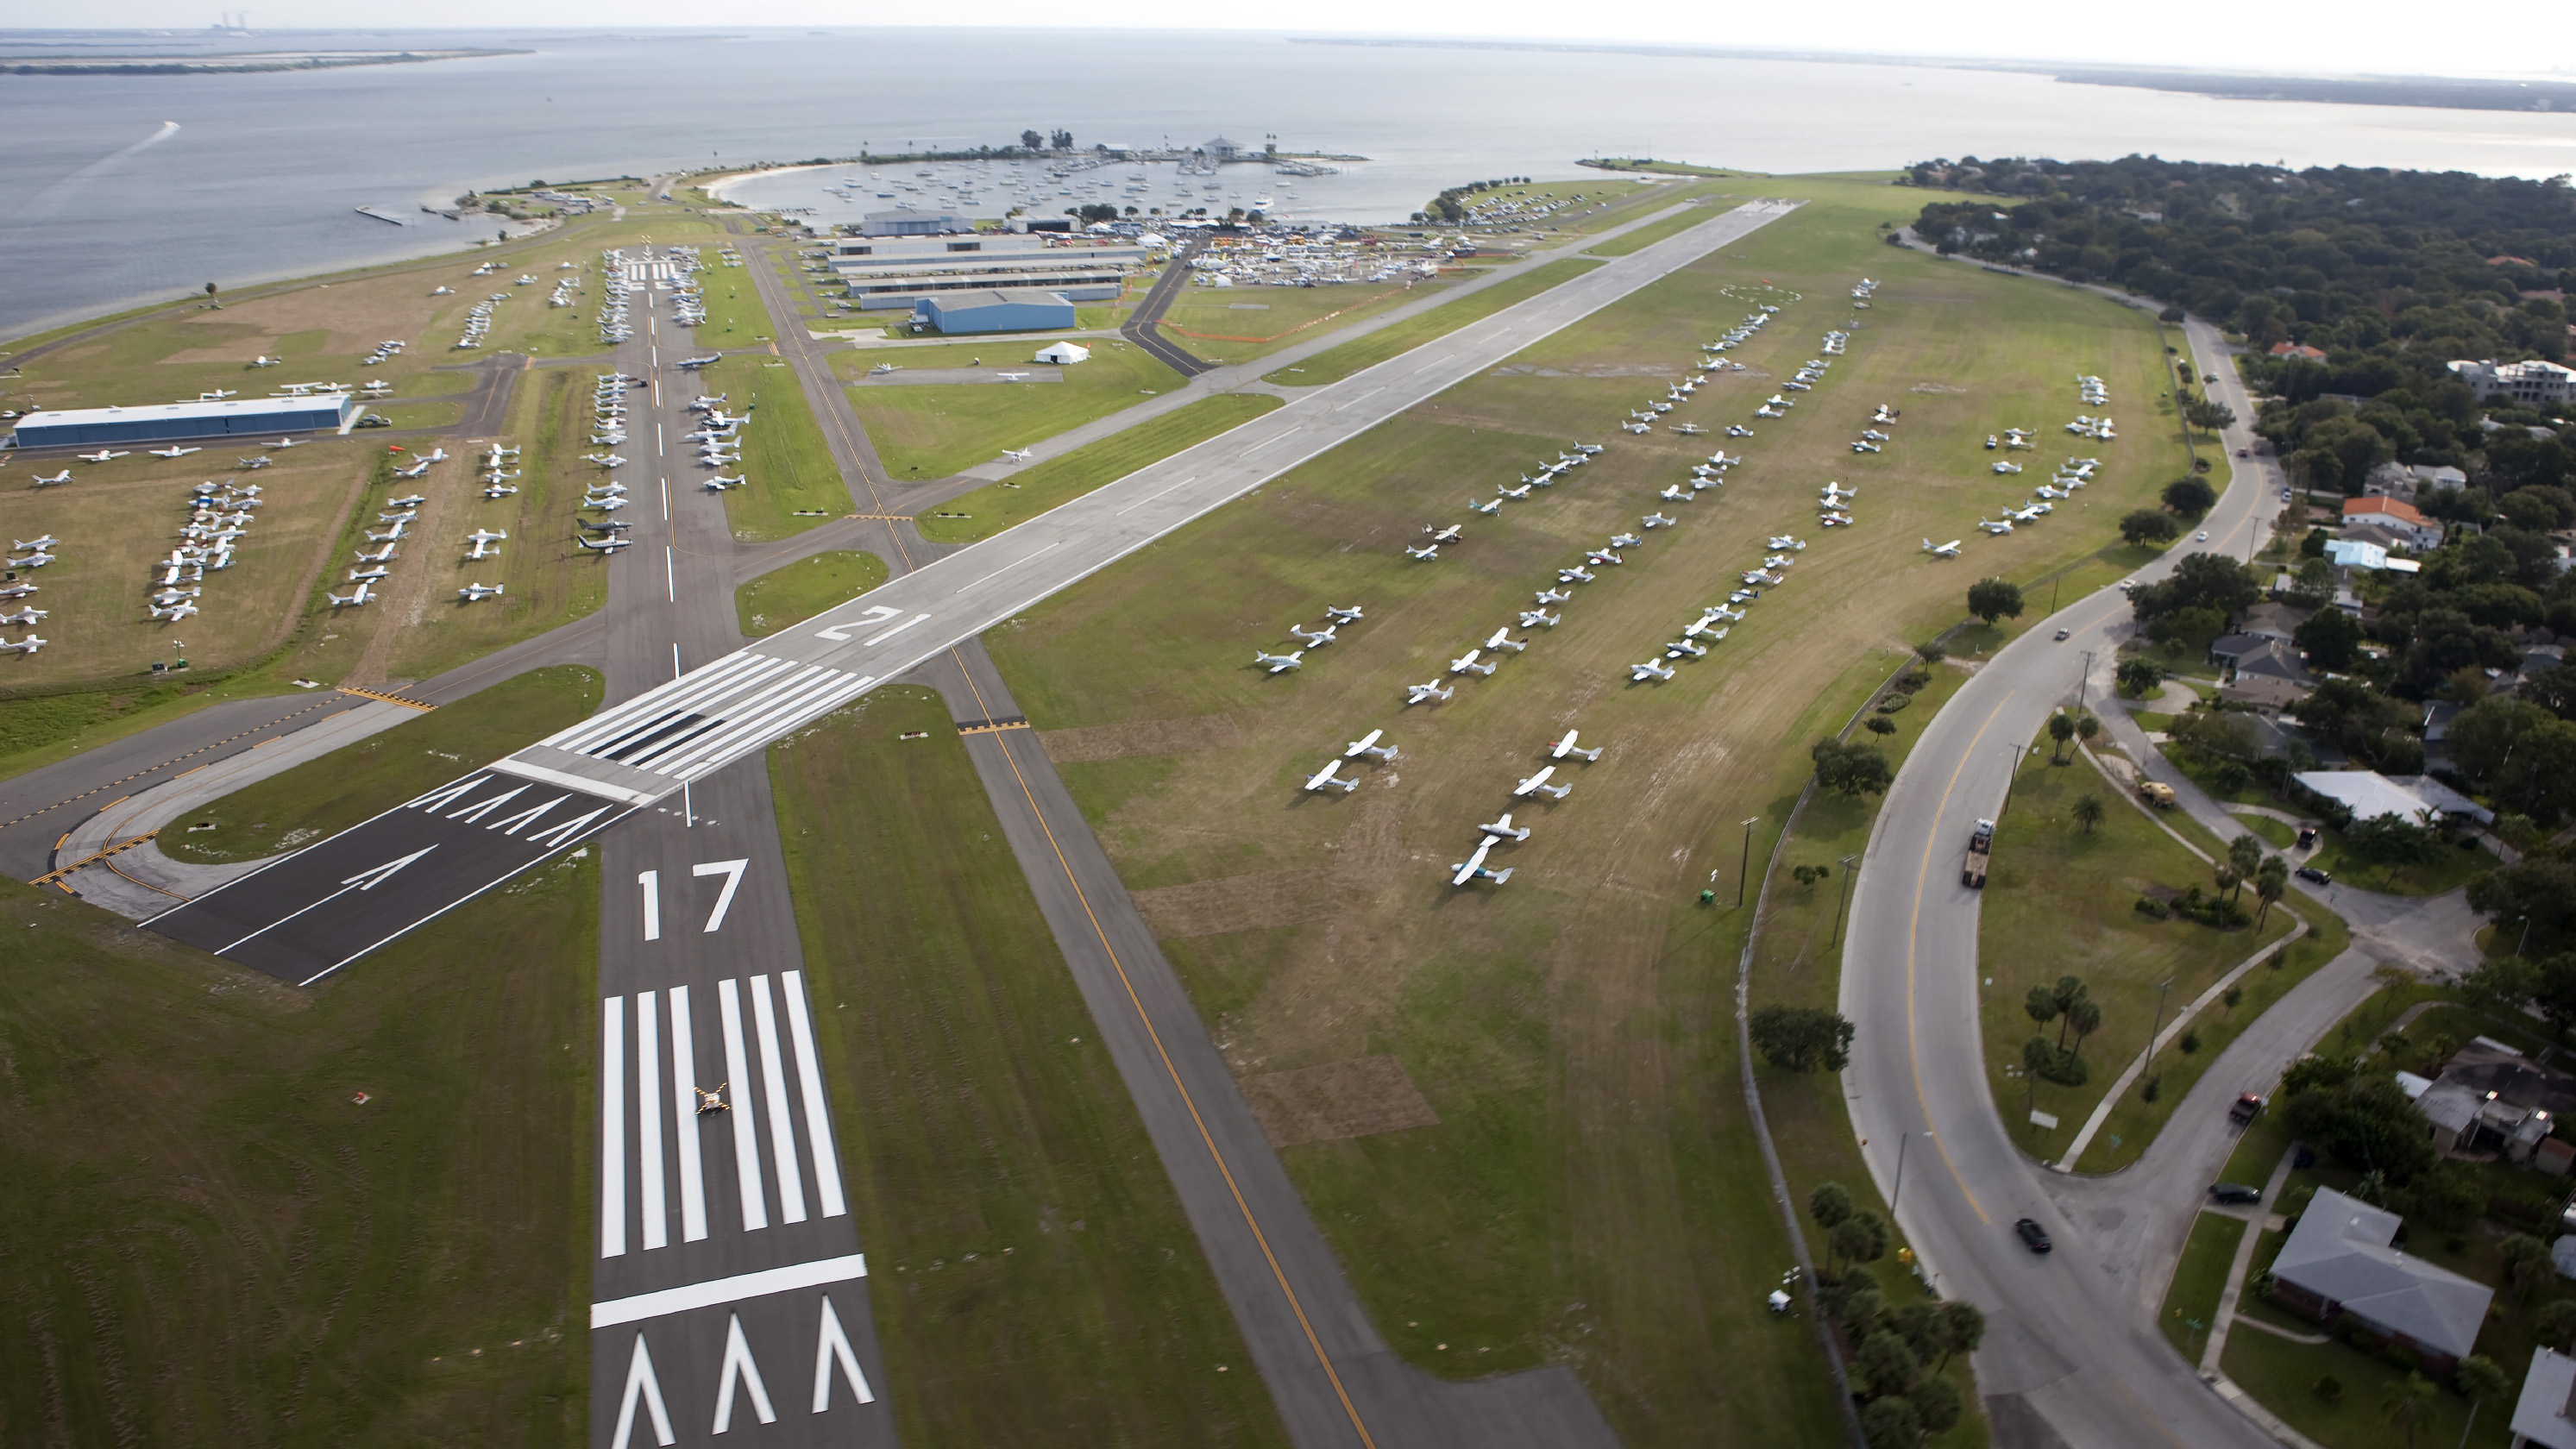 Peter O. Knight Airport in Tampa, Florida. Photo by Christopher Rose.